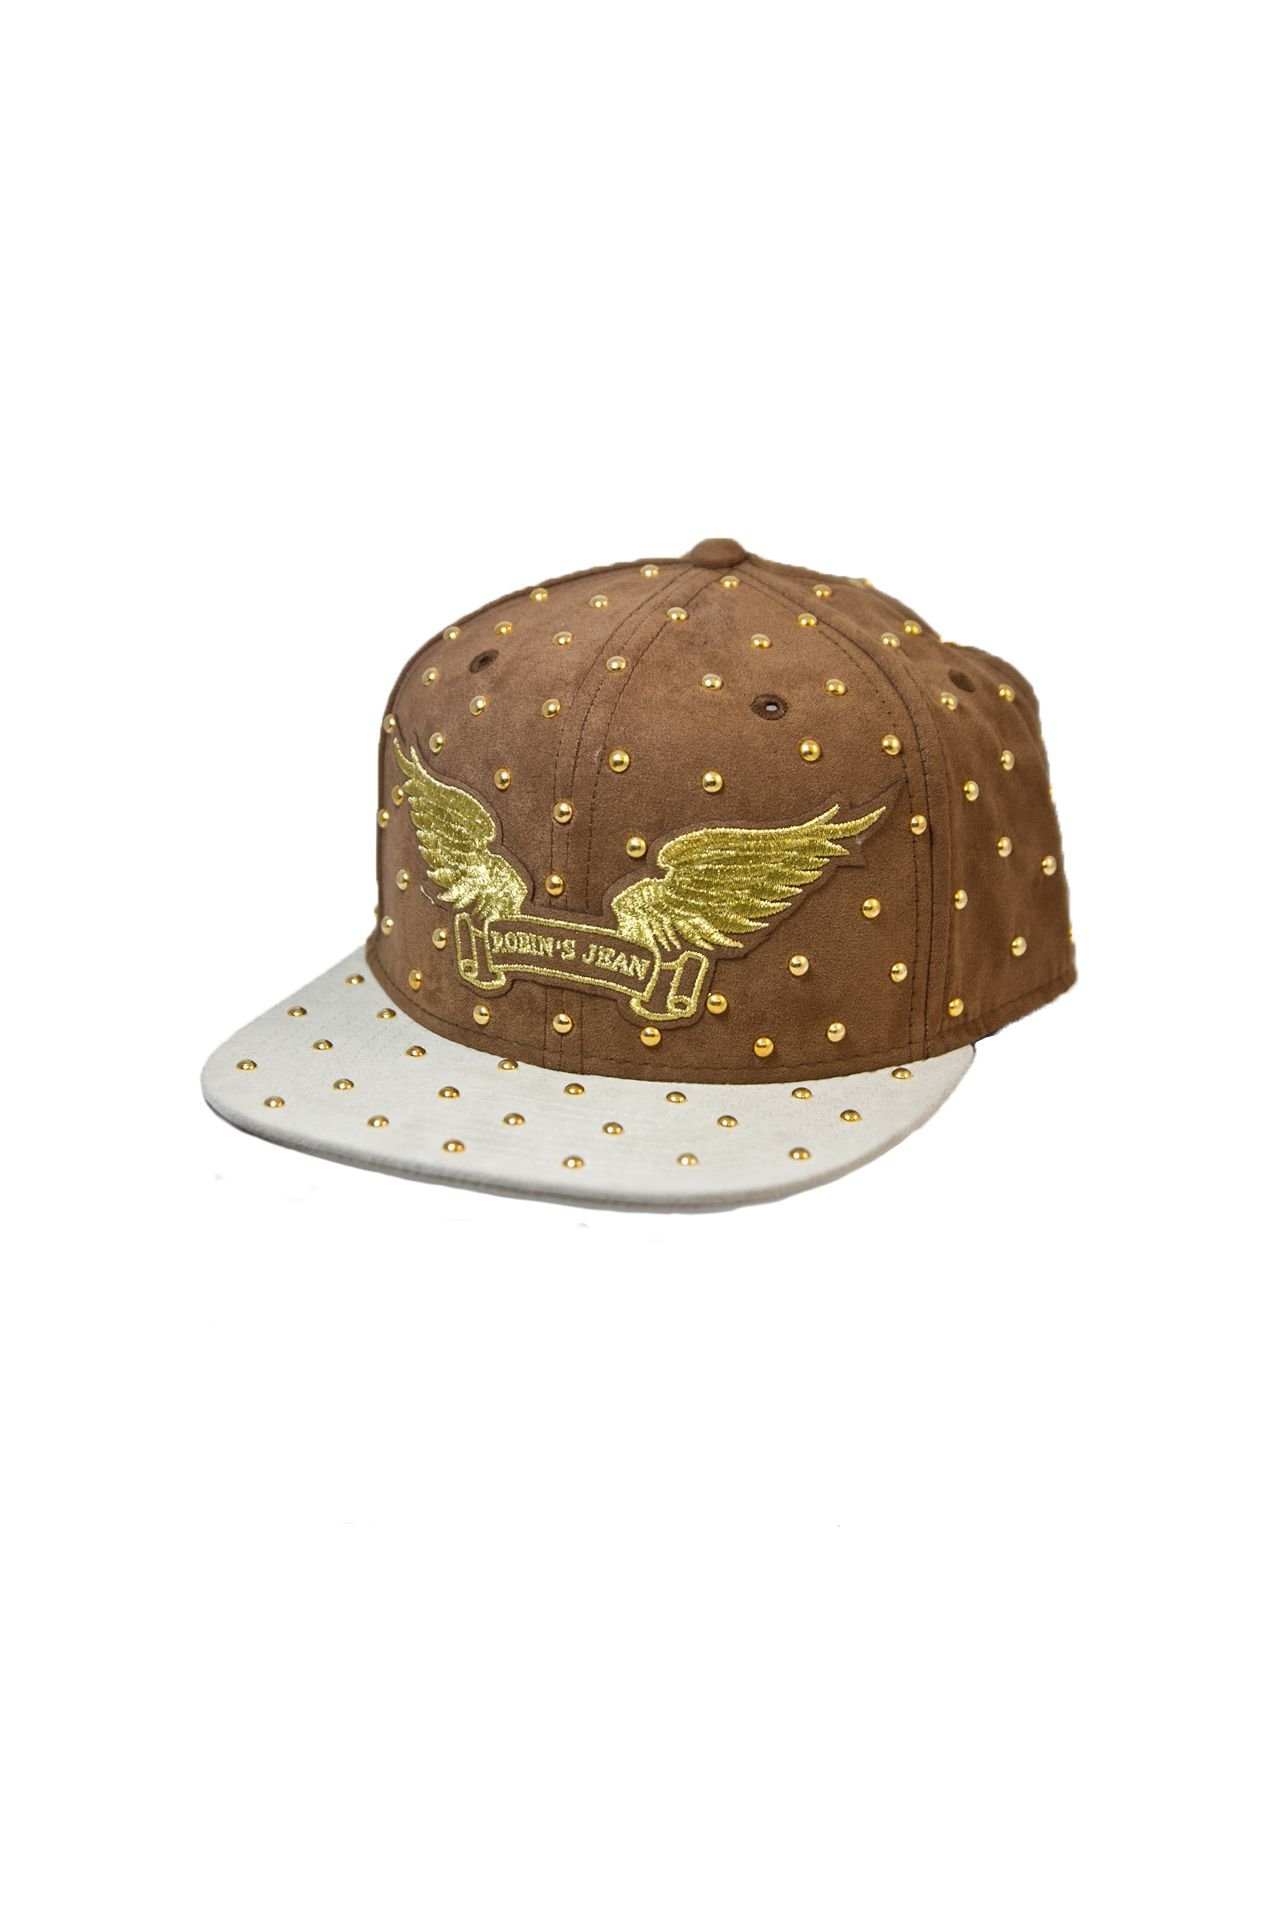 COFFEE SUEDE CAP 2 TONES STUDDED